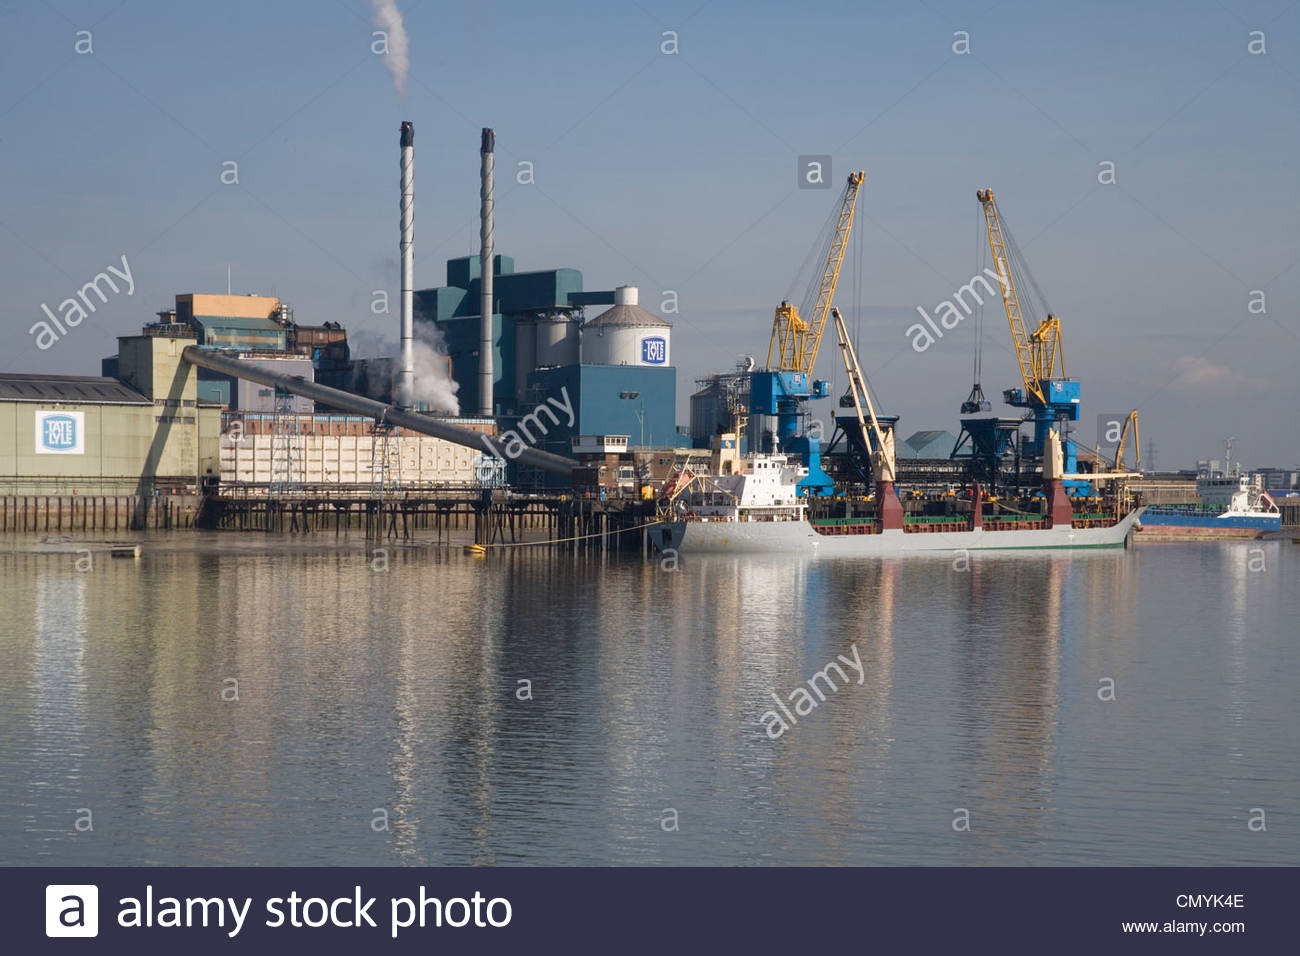 the tate and lyle sugar factory at silvertown on the river thames london - Stock Image